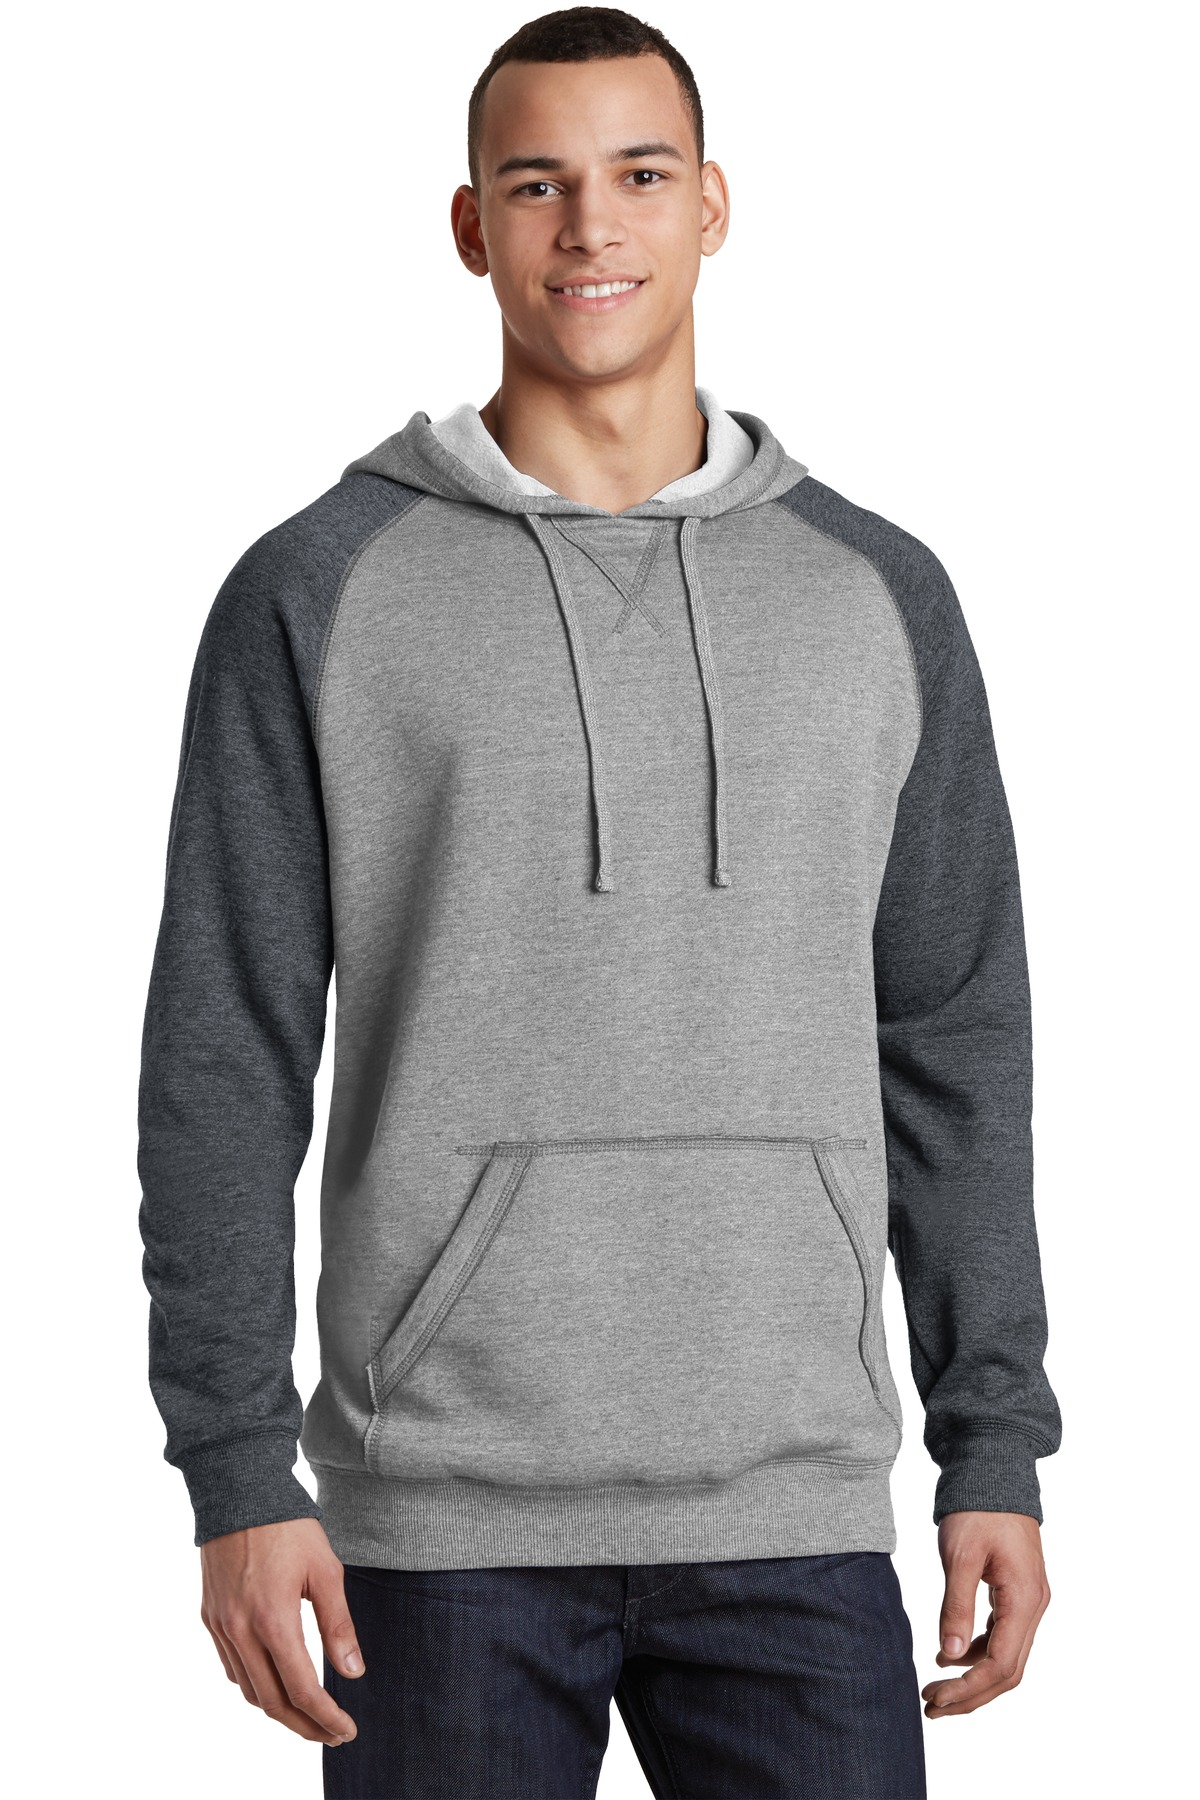 District ®  Young Mens Lightweight Fleece Raglan Hoodie.  DT196 - Heathered Grey/ Heathered Charcoal